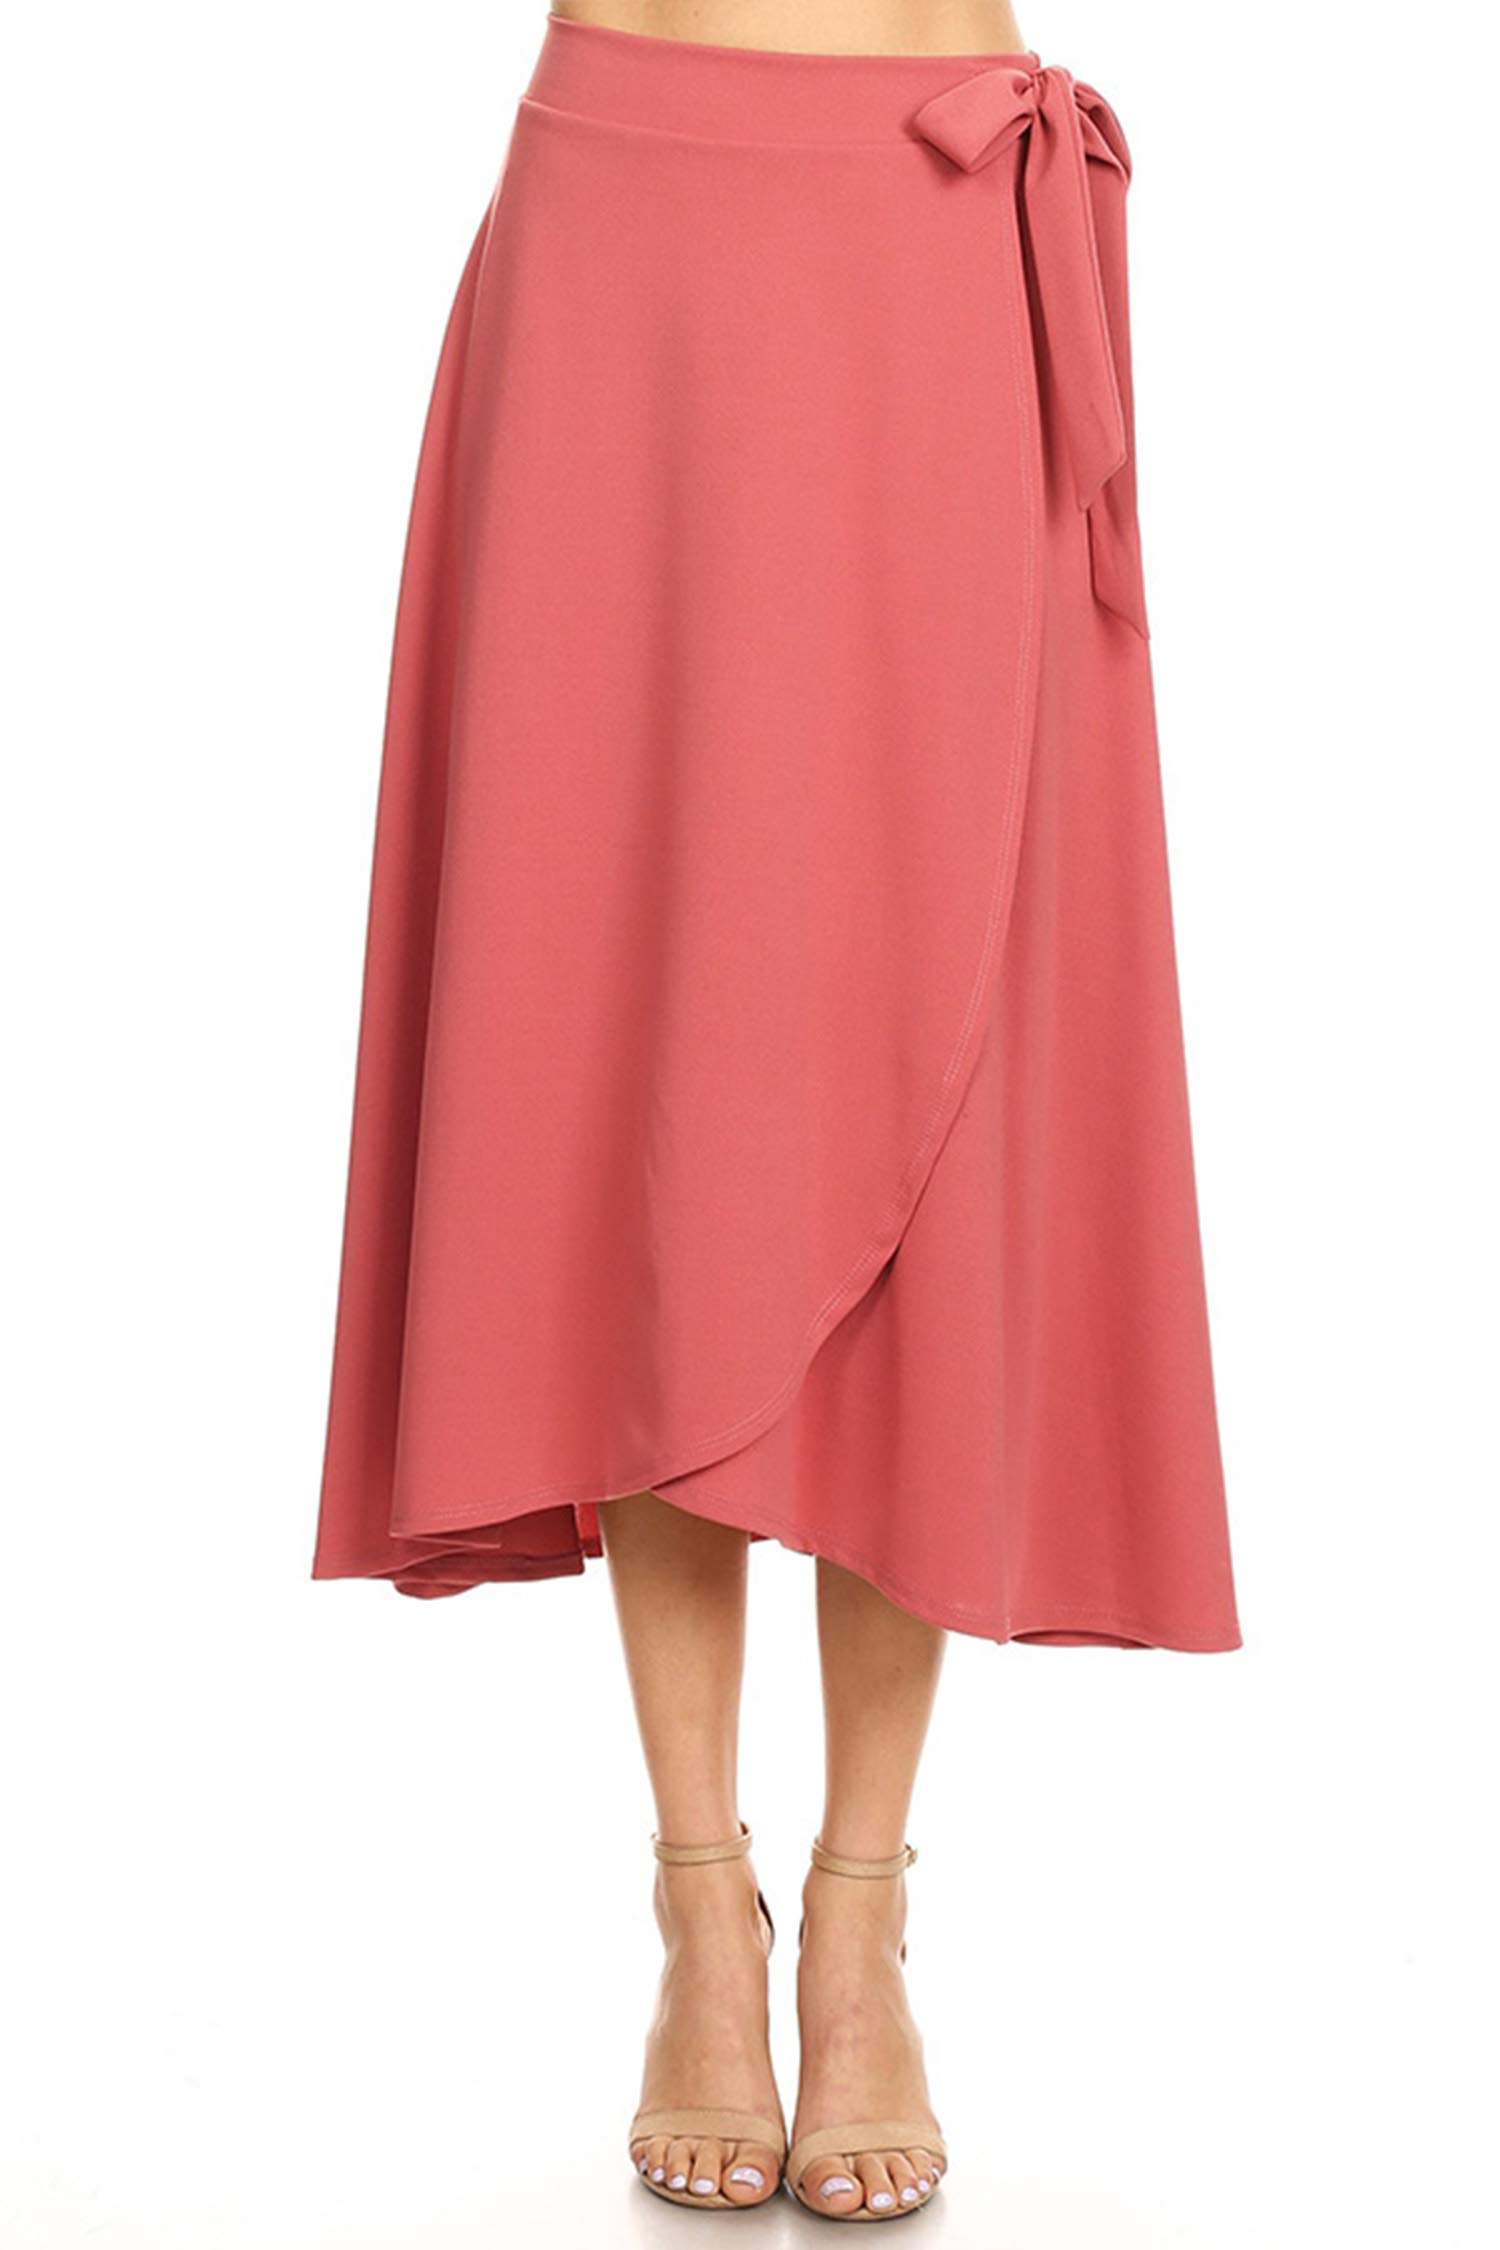 Solid Basic Faux Wrap Casual Loose Fit Elastic Waist Skirt/Made in USA Dusty Rose 3XL